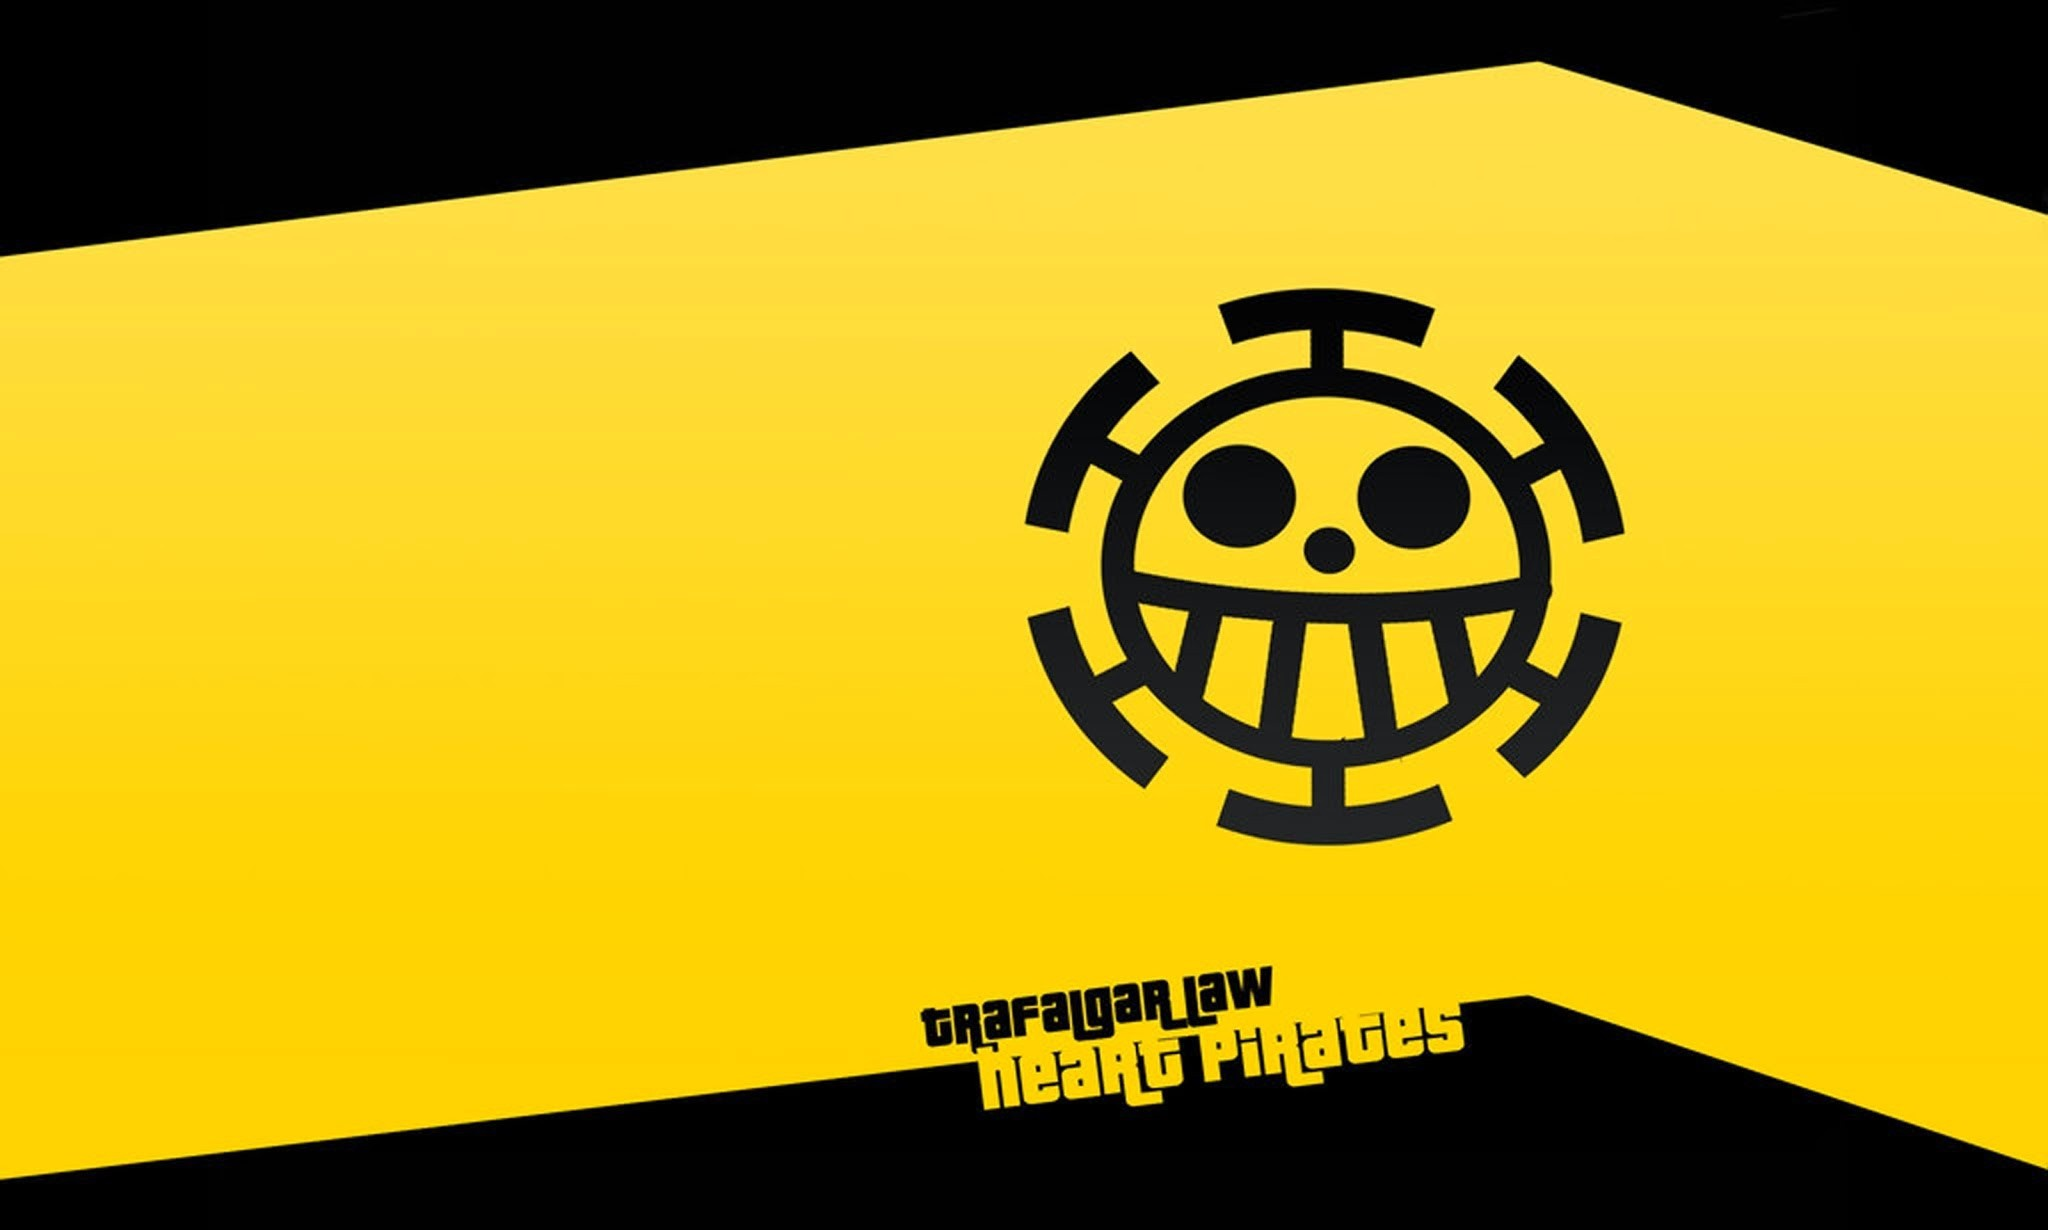 trafalgar law logo - HD 1600×1000